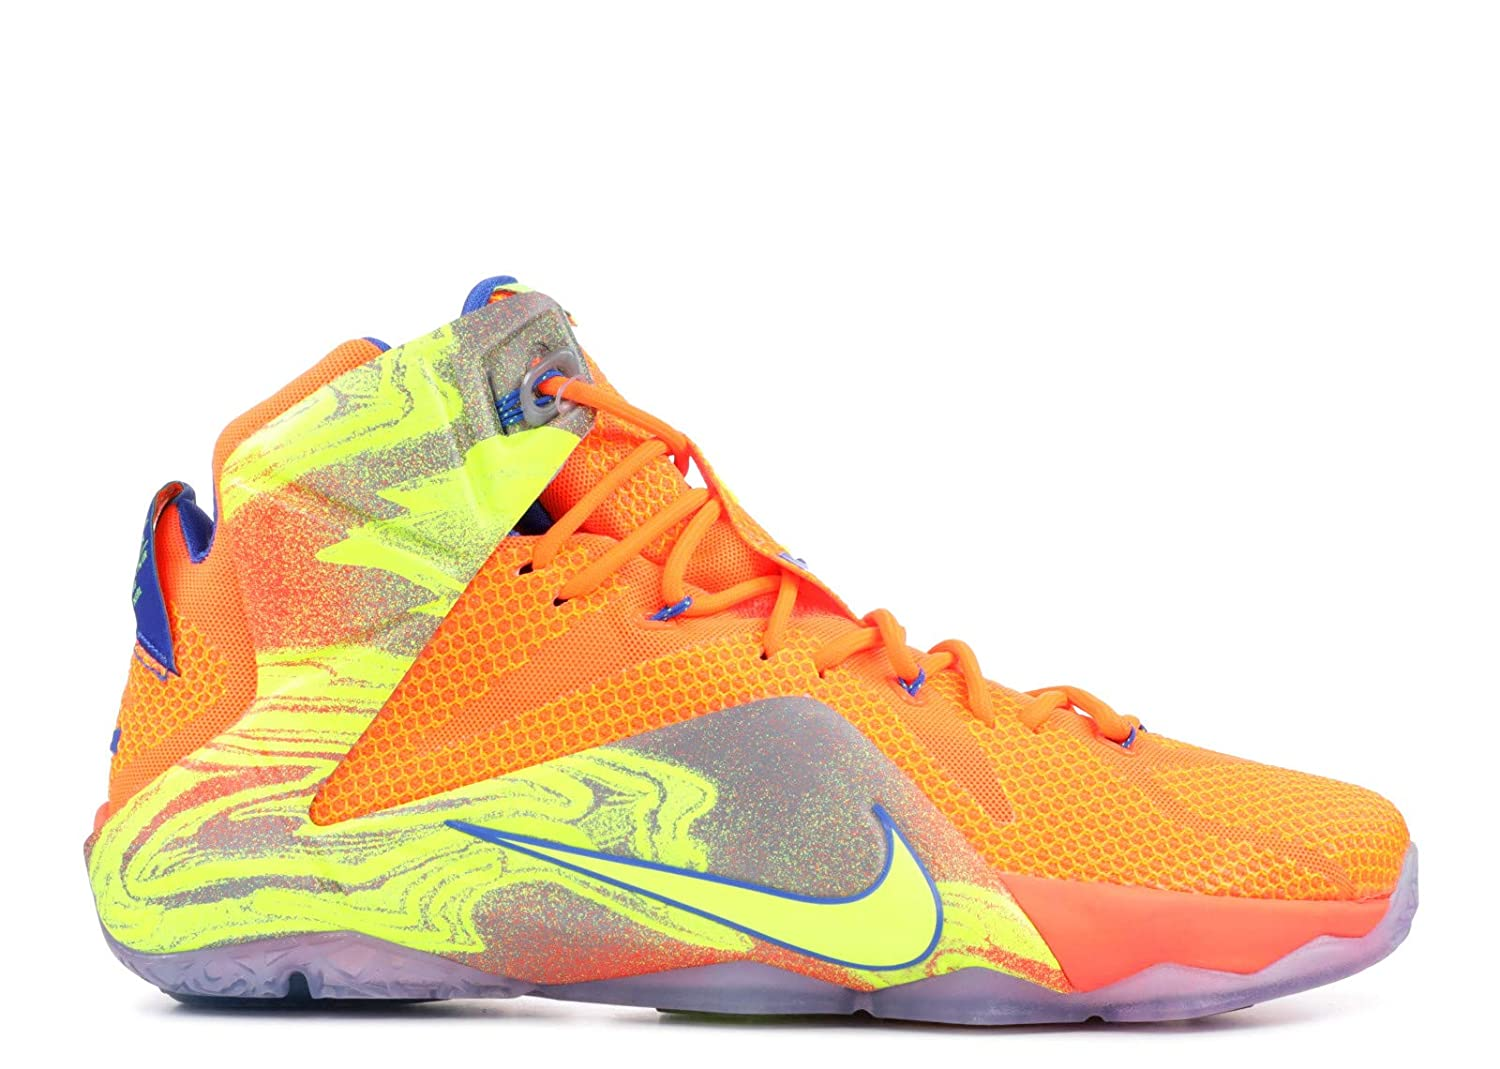 982d264f96689 Nike LeBron XII Mens Basketball Shoes: Amazon.ca: Shoes & Handbags